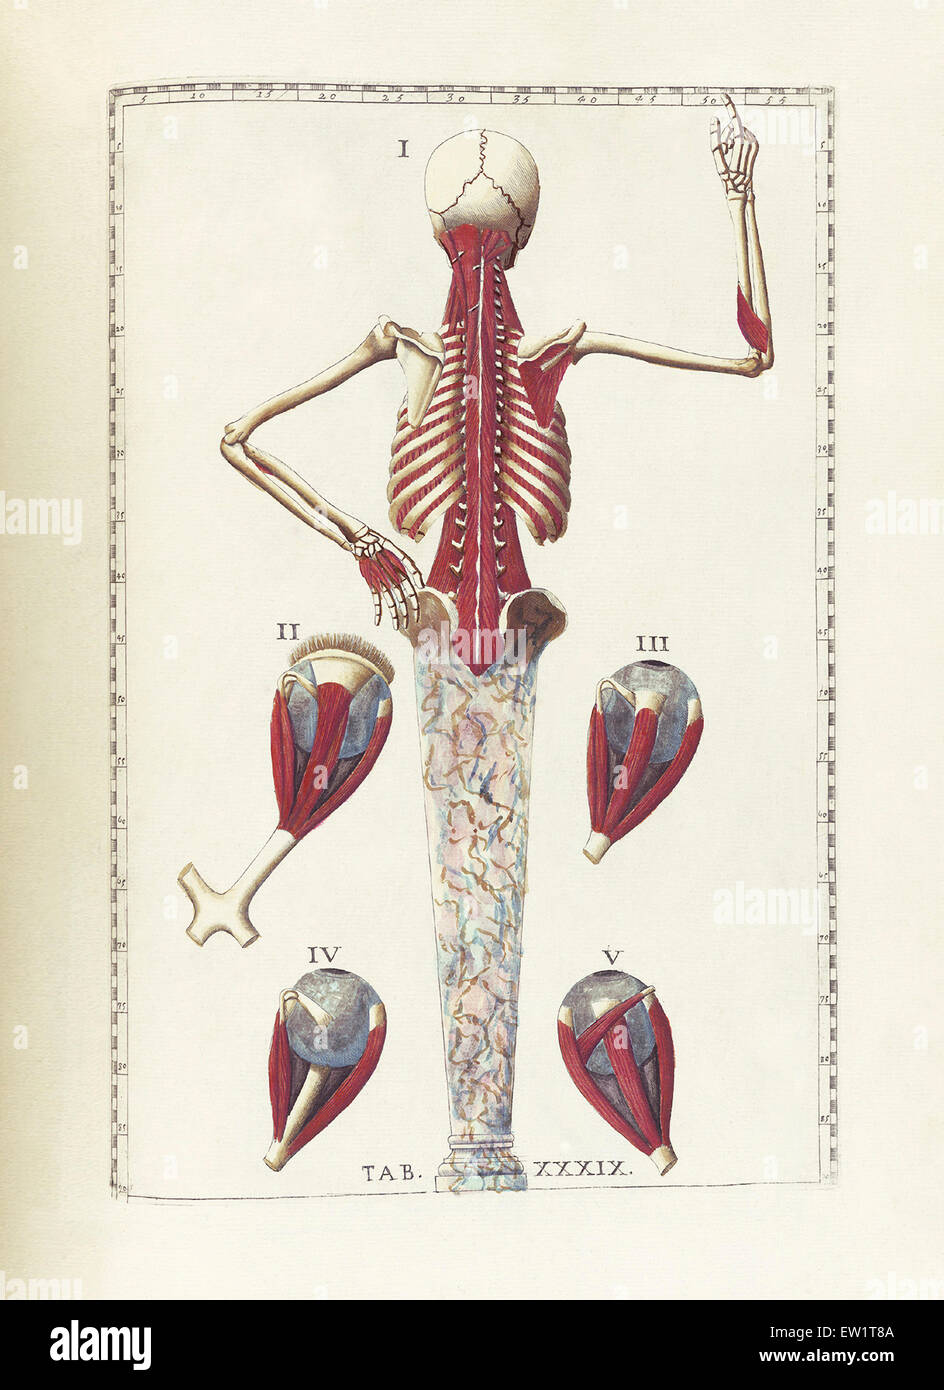 The science of human anatomy by Bartholomeo Eustachi, depicting the ...